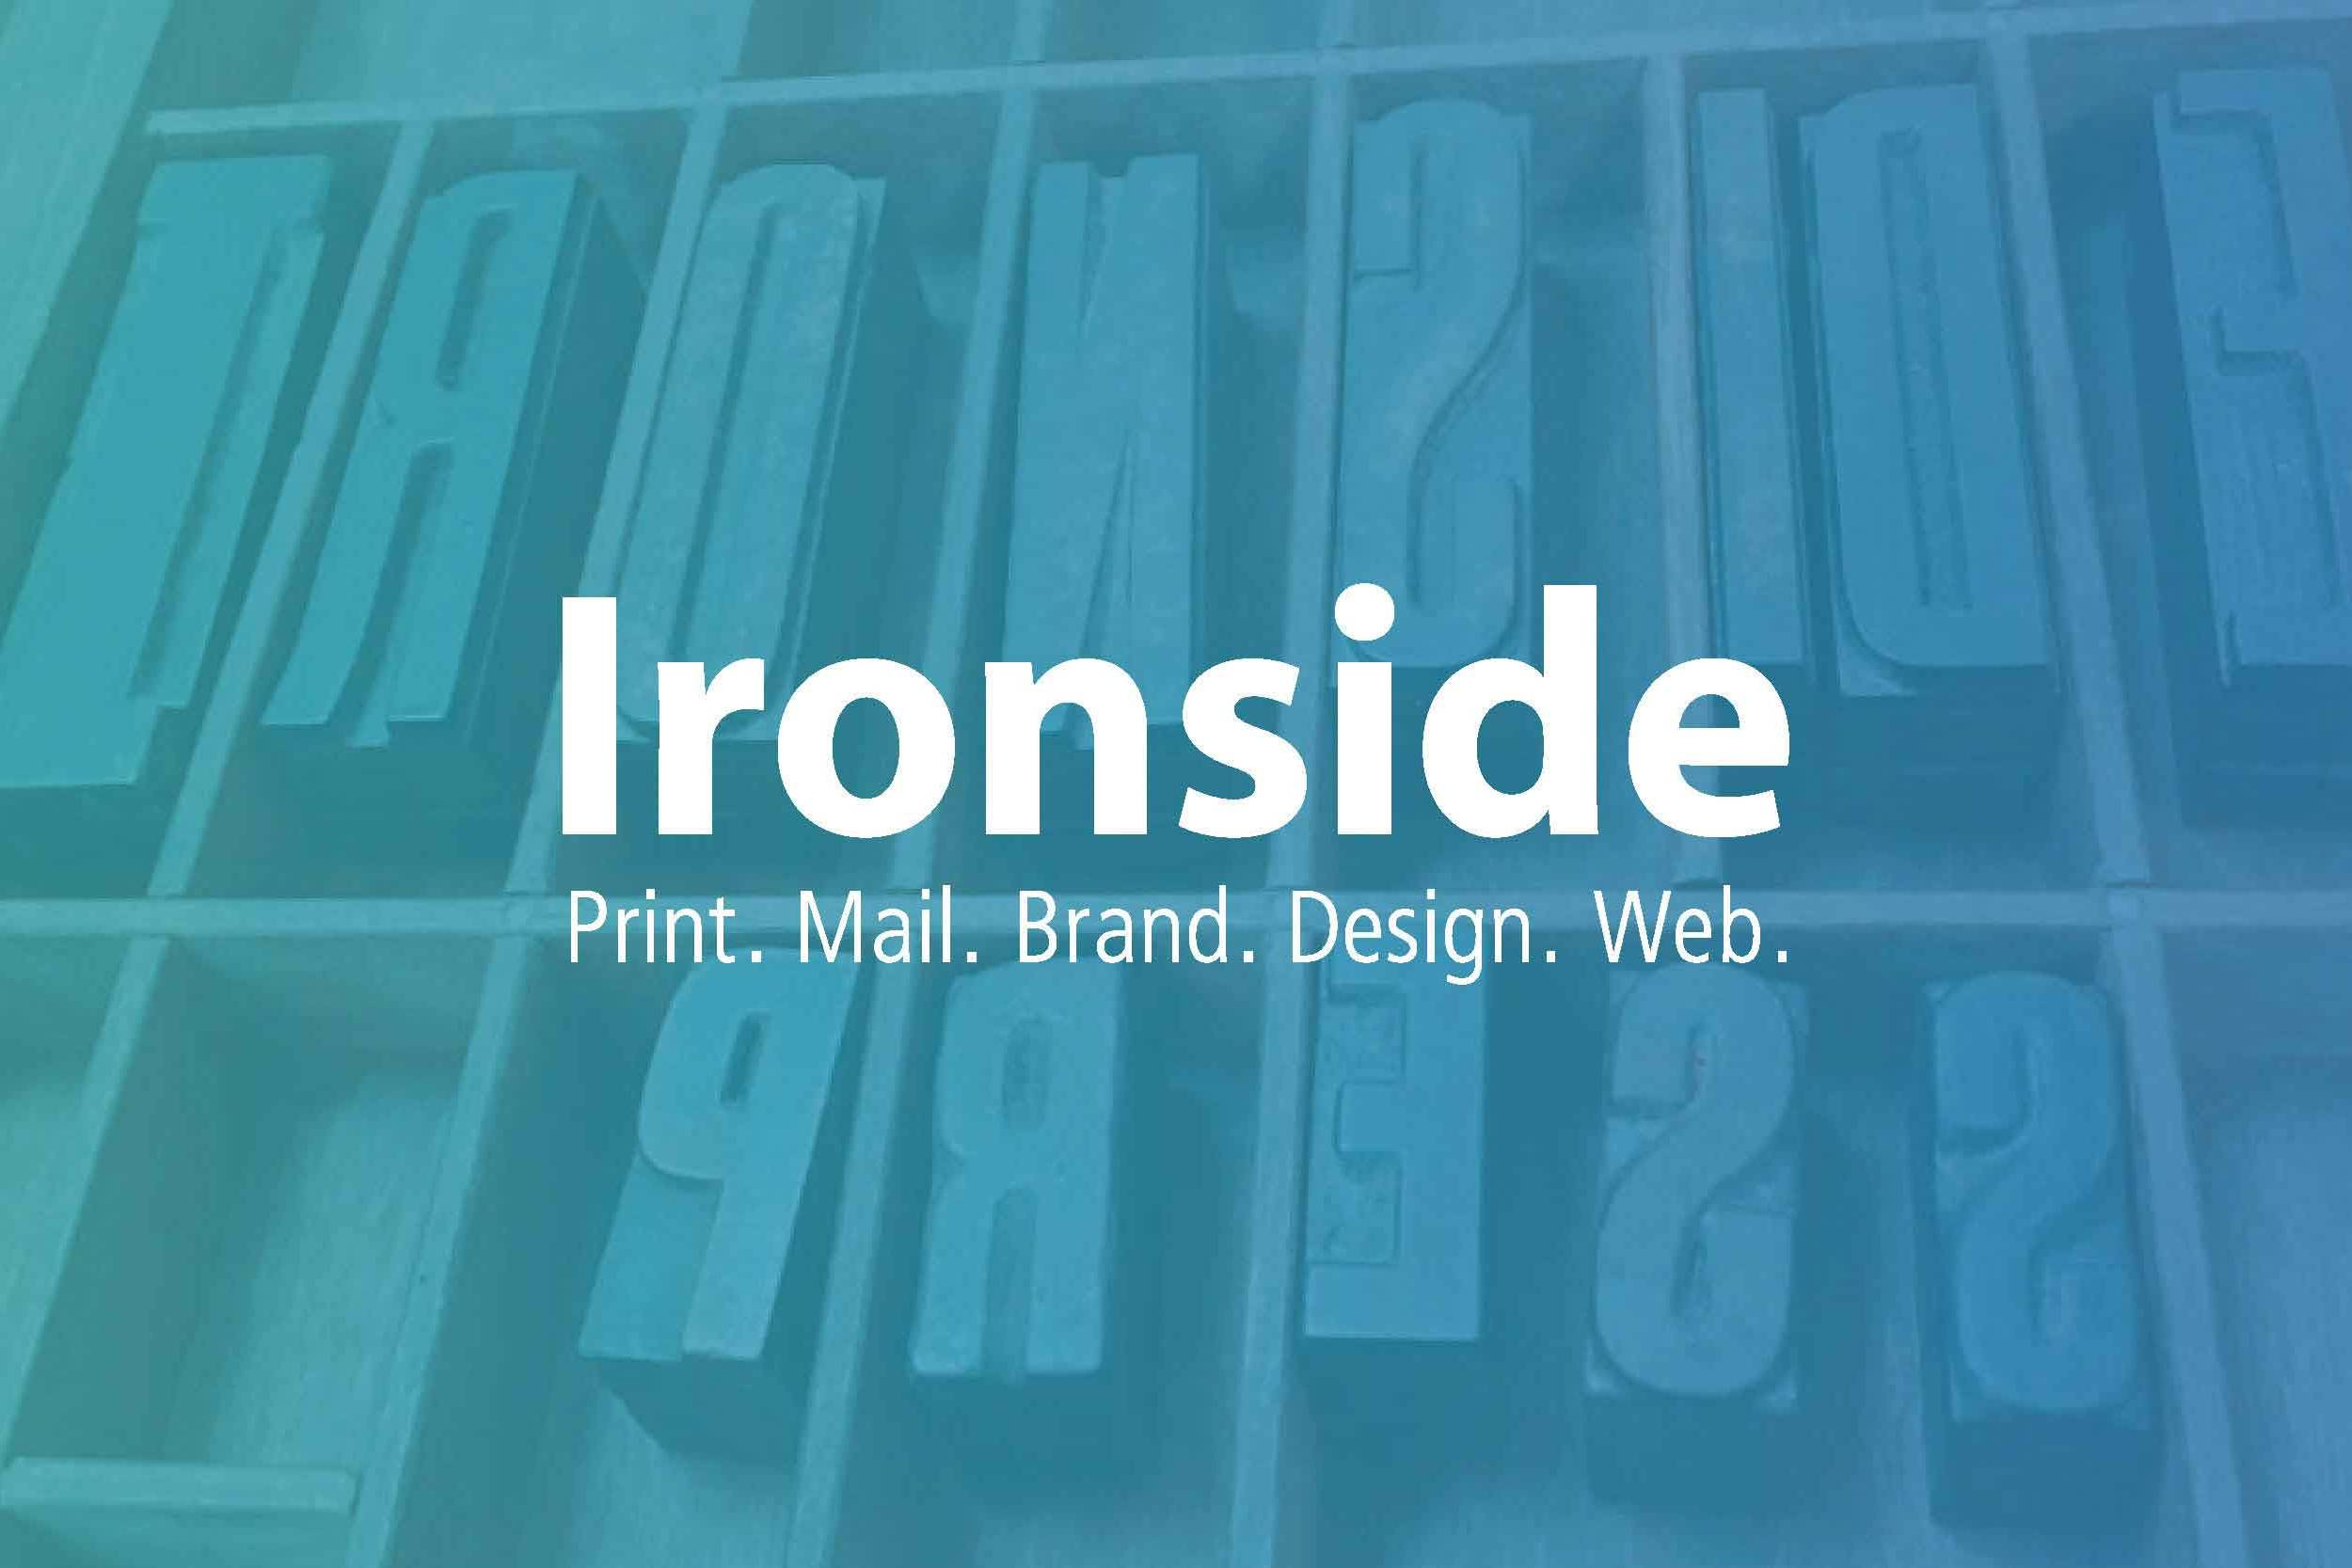 Ironside Press Print Mail Brand Design Web FB-Image - our work